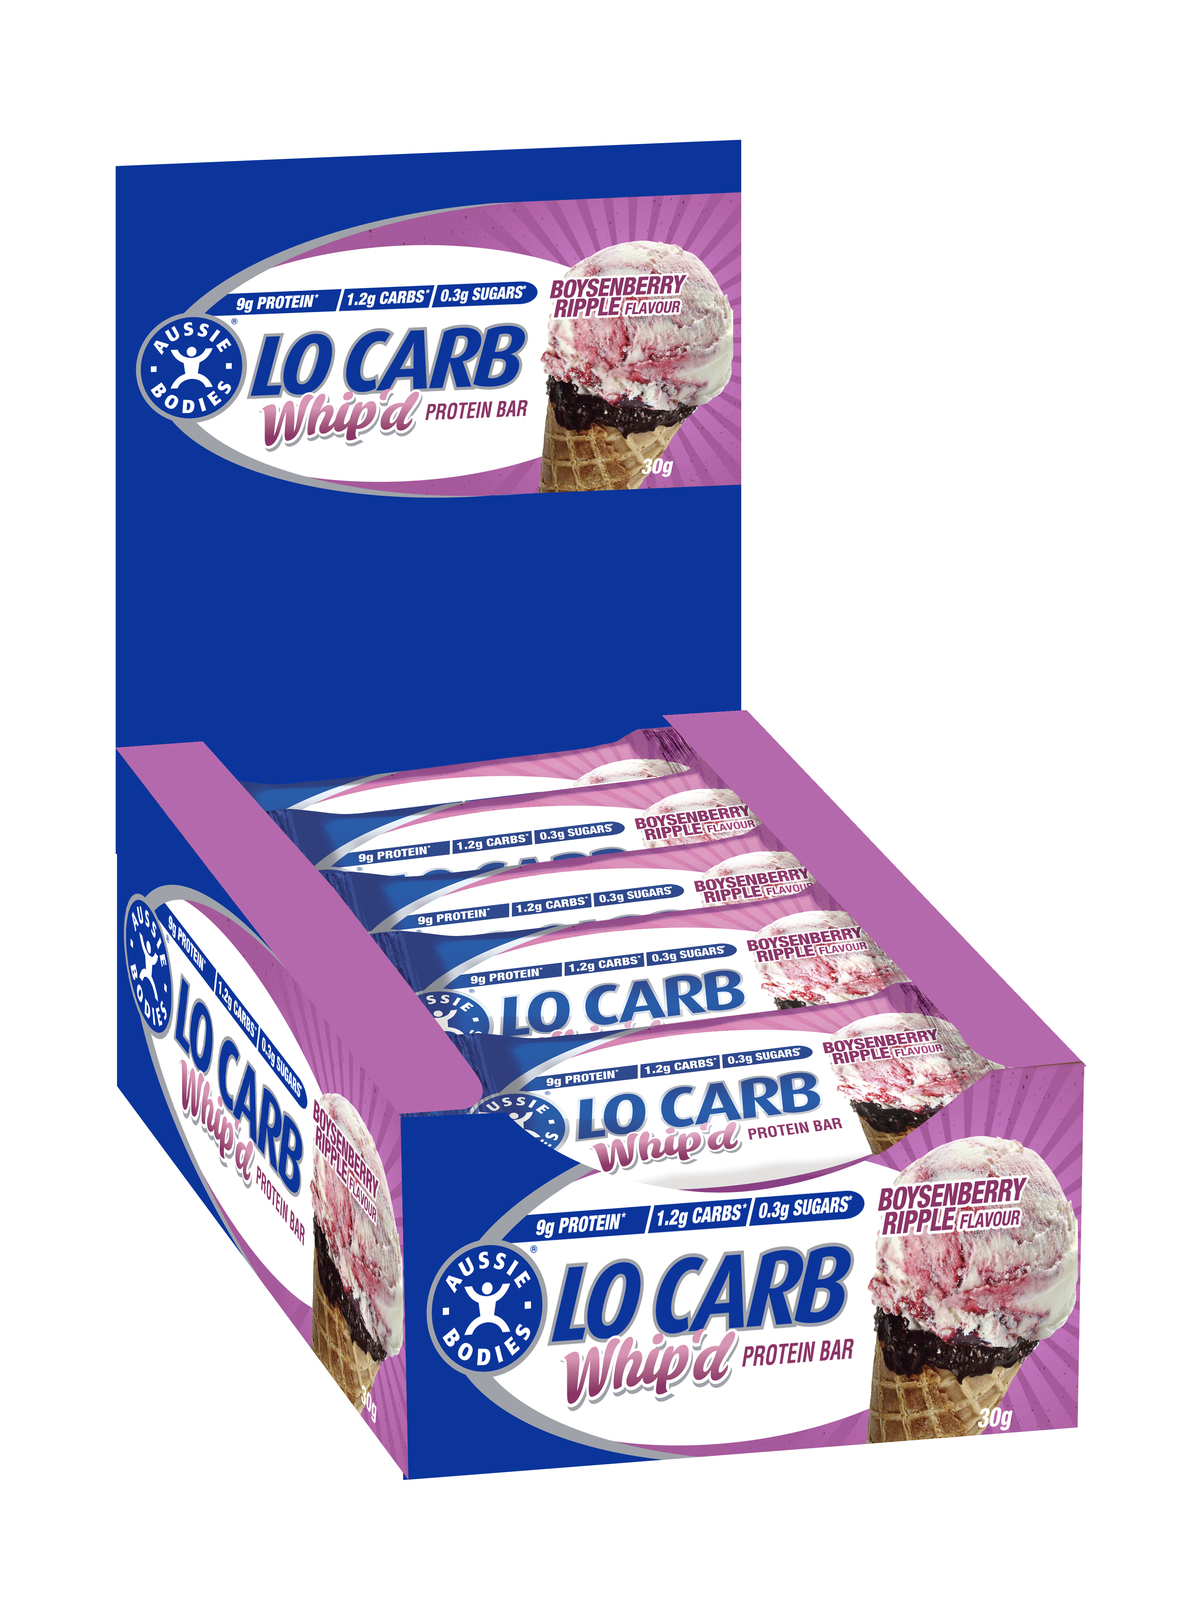 Aussie Bodies Lo Carb Whip'd Protein Bars - Boysenberry Ripple (12x30g) image